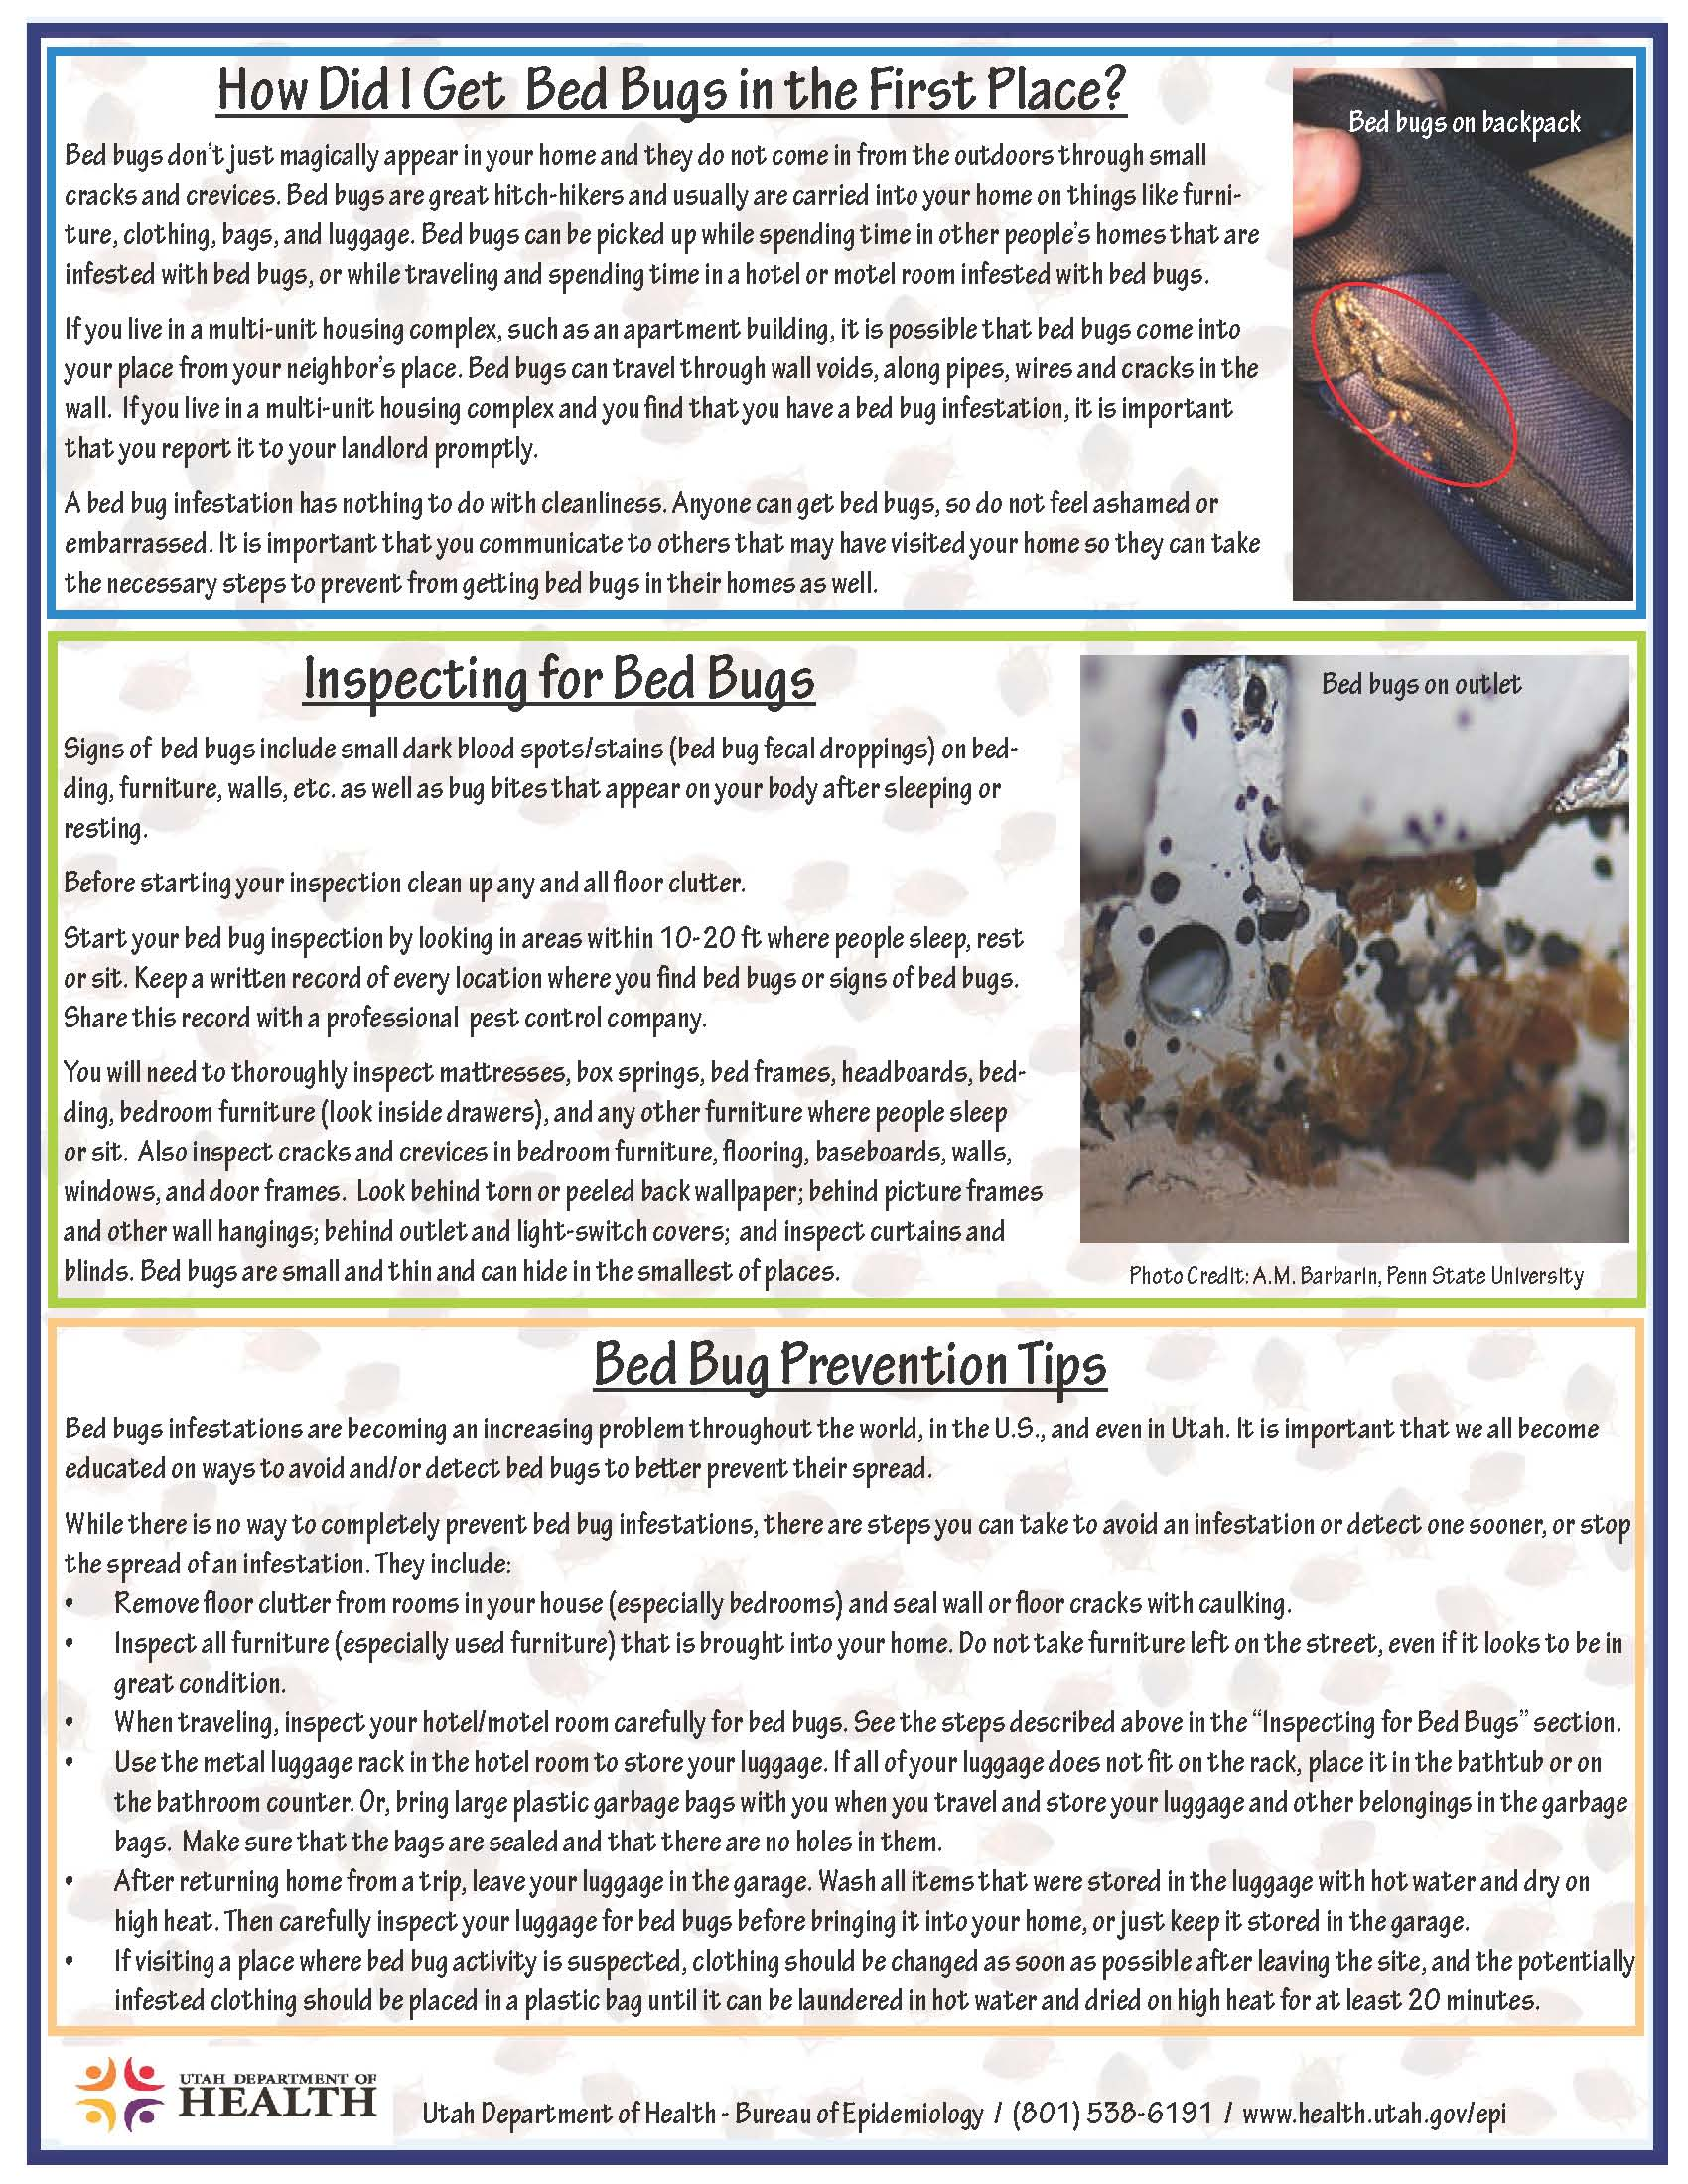 Facts about bed bugs tooele county health department for Bed bugs on sheets